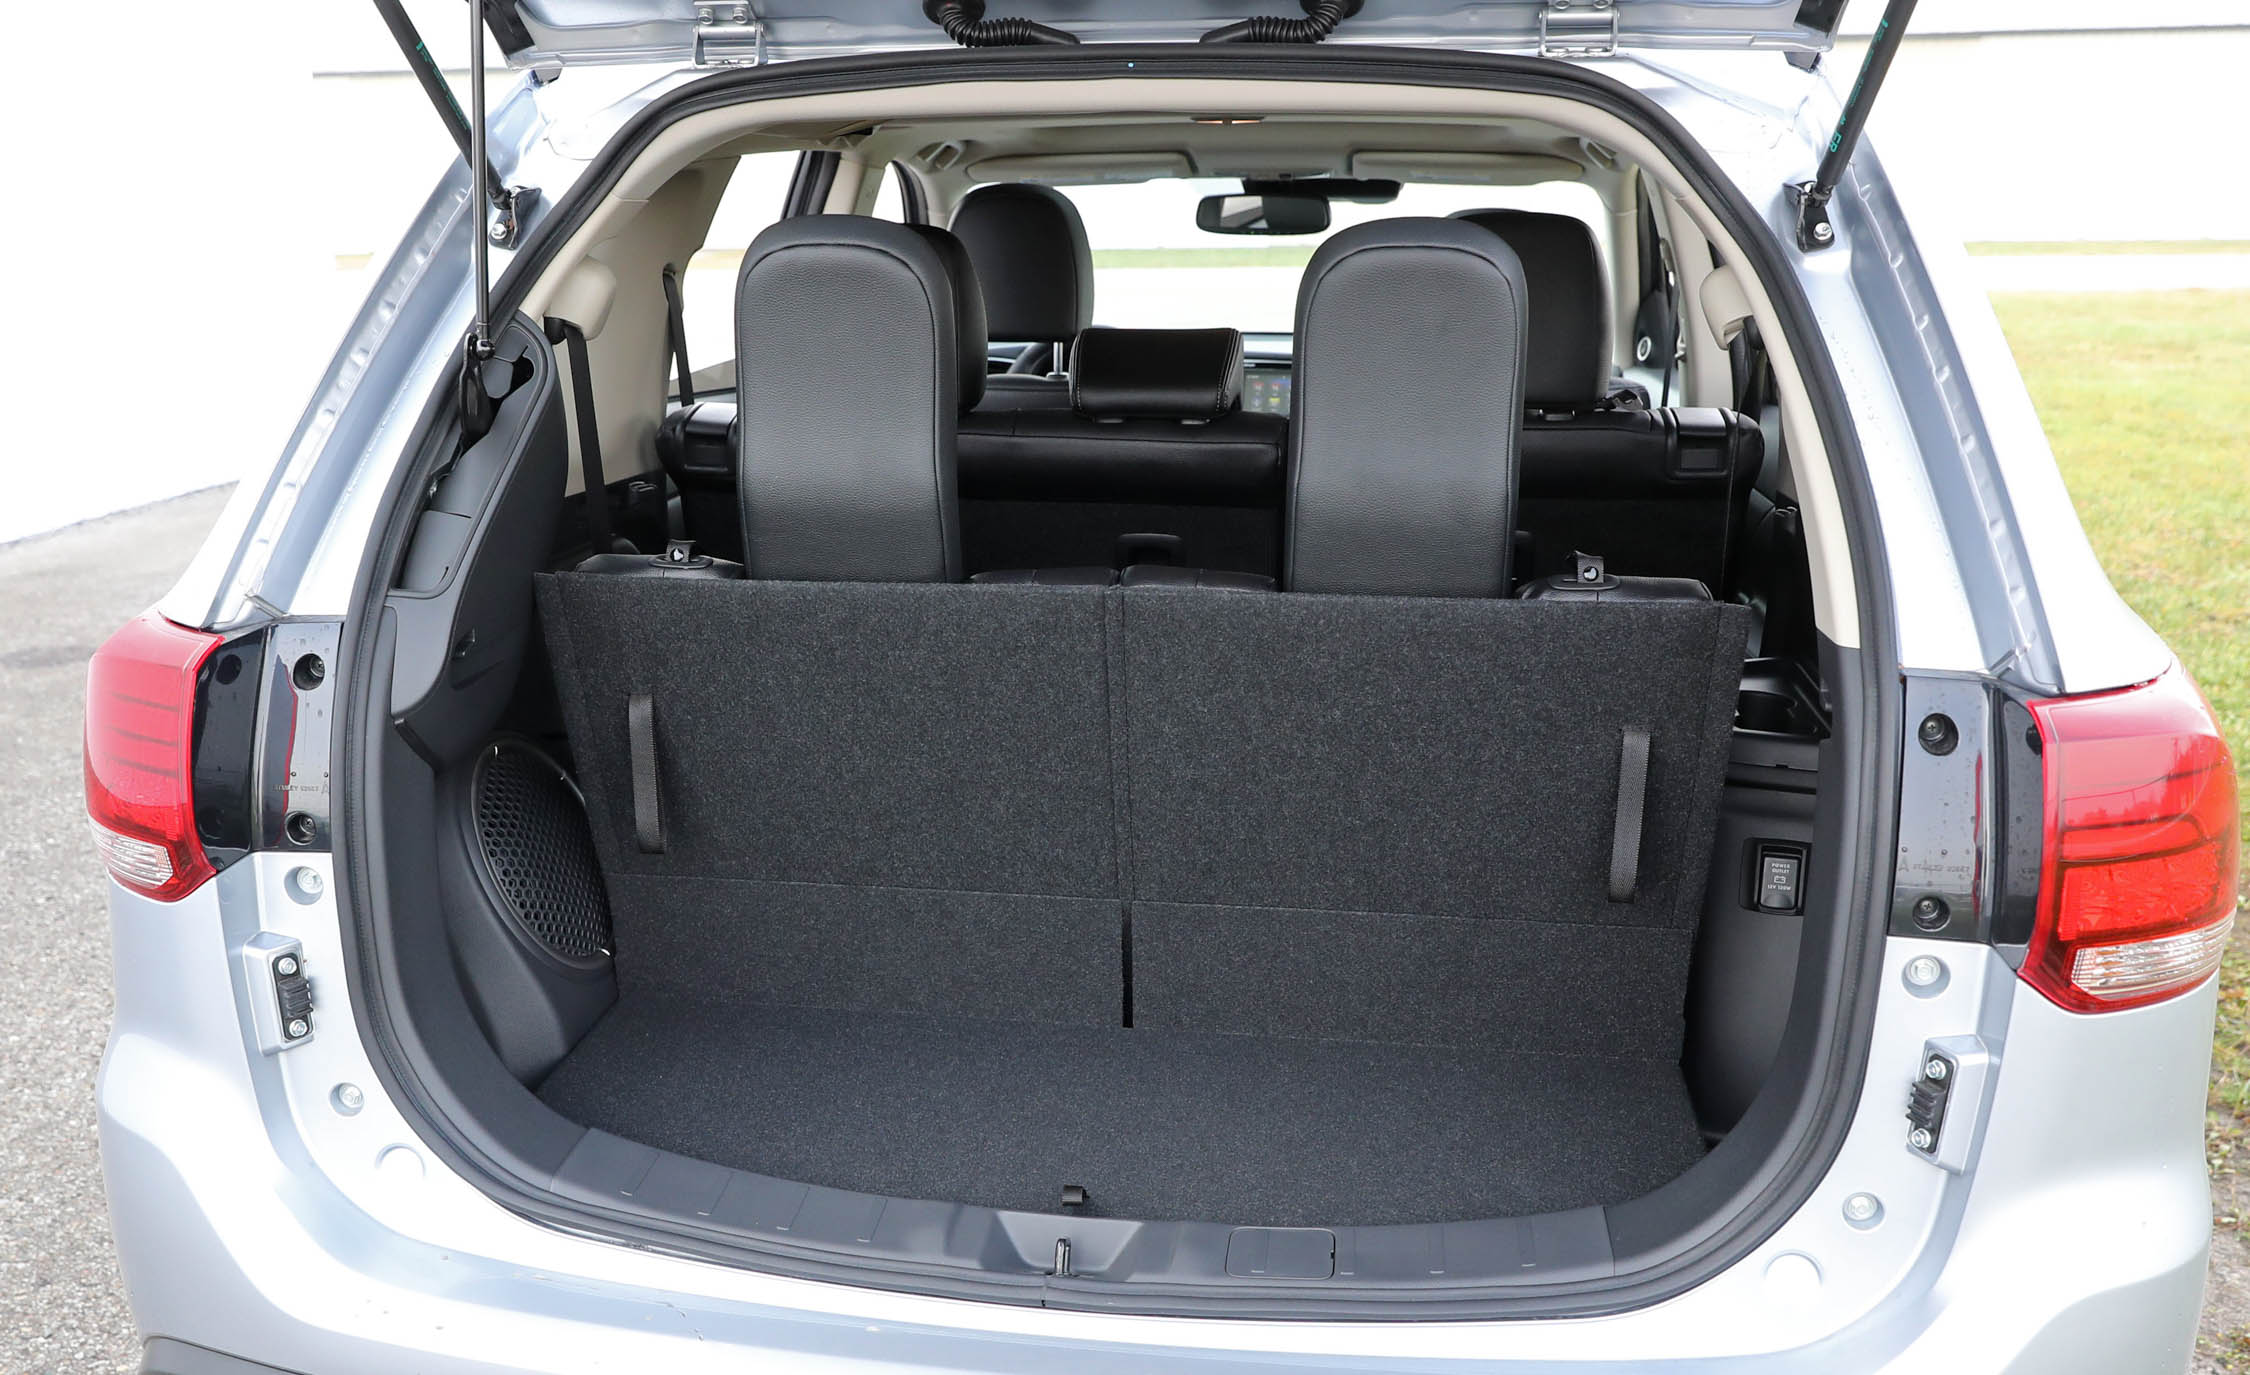 2017 Mitsubishi Outlander Gt Interior View Cargo Trunk (View 21 of 34)